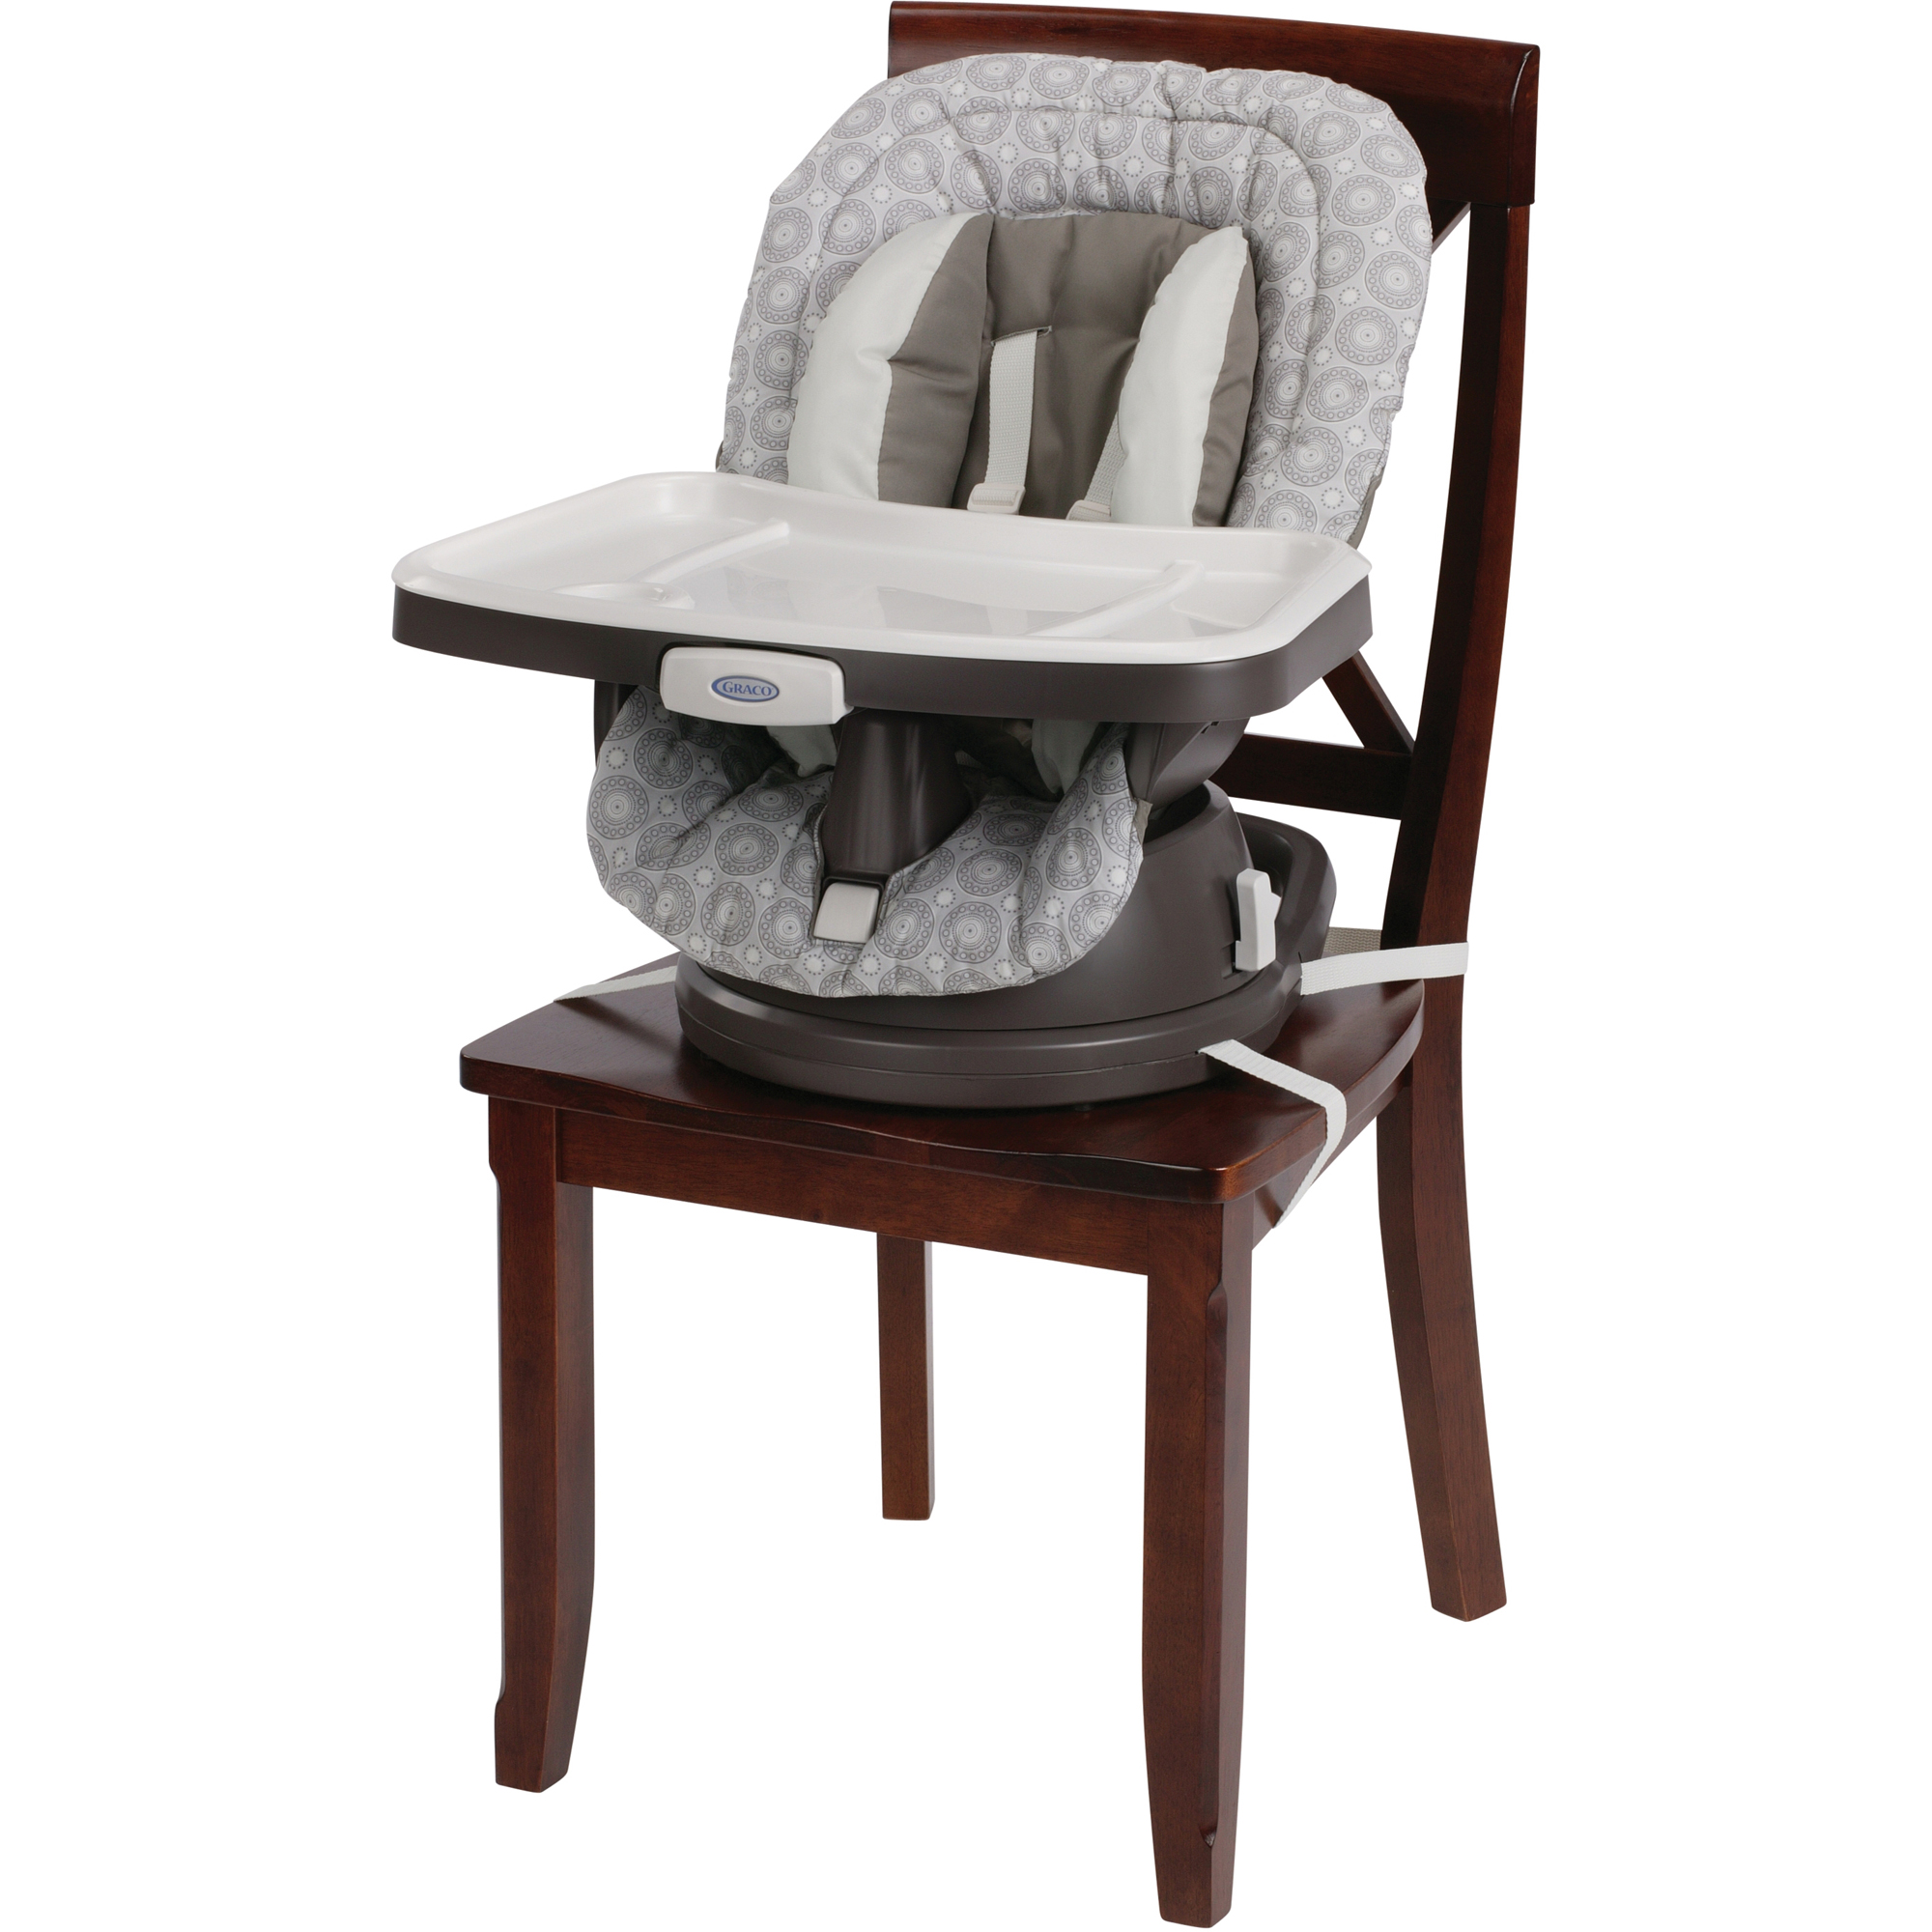 Exceptionnel Graco SwiviSeat 3 In 1 High Chair Booster Seat, Abbington   Walmart.com